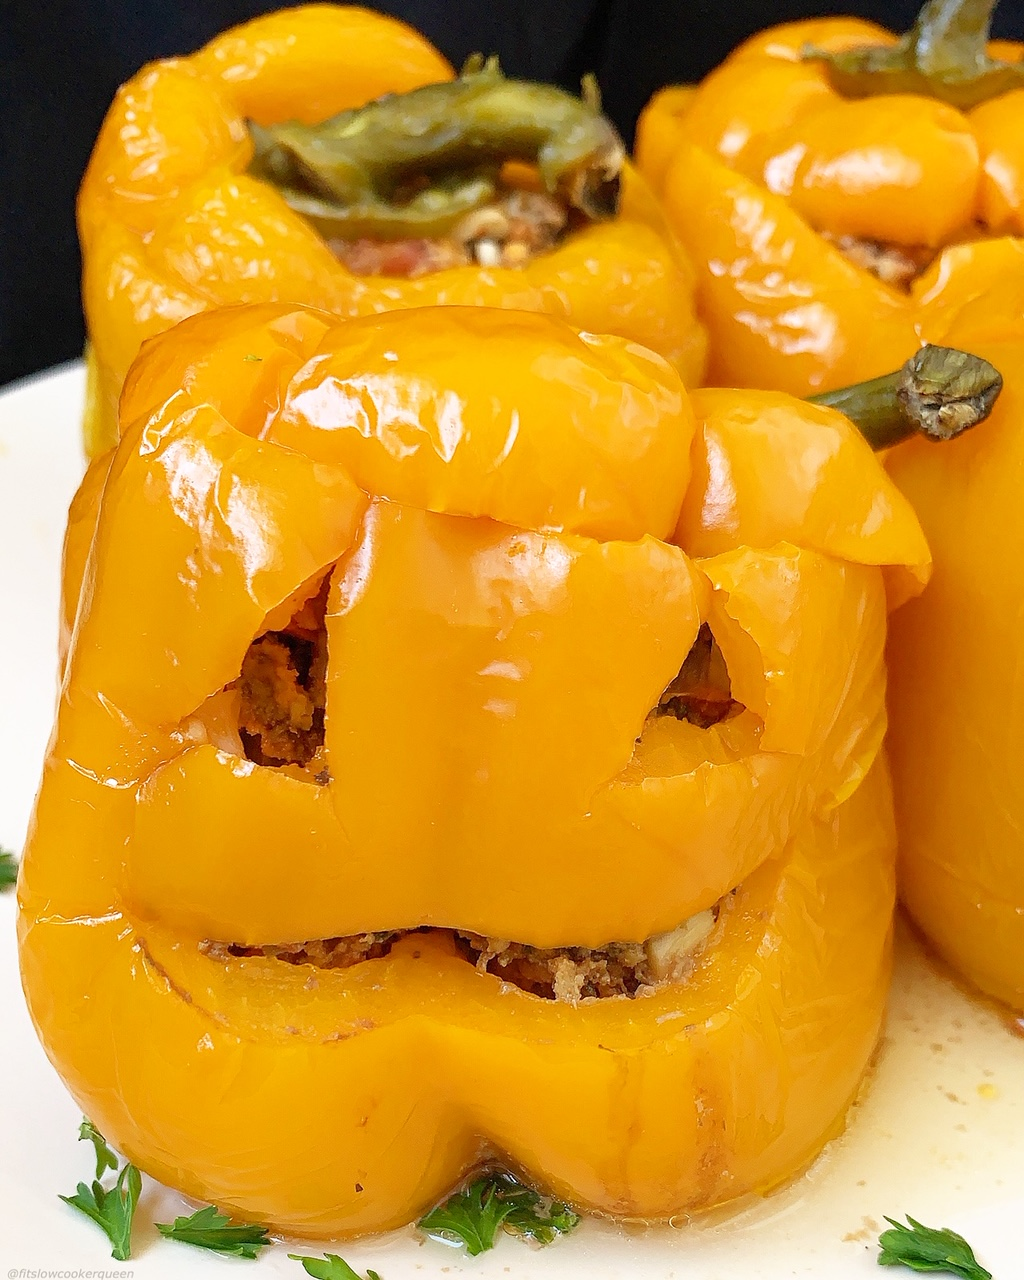 These jack-o-lantern stuffed peppers are an easy way to add some Halloween fun to your dinner table.The best part is they're low-carb, paleo, whole30, and made in the slow cooker for stress-free meal.